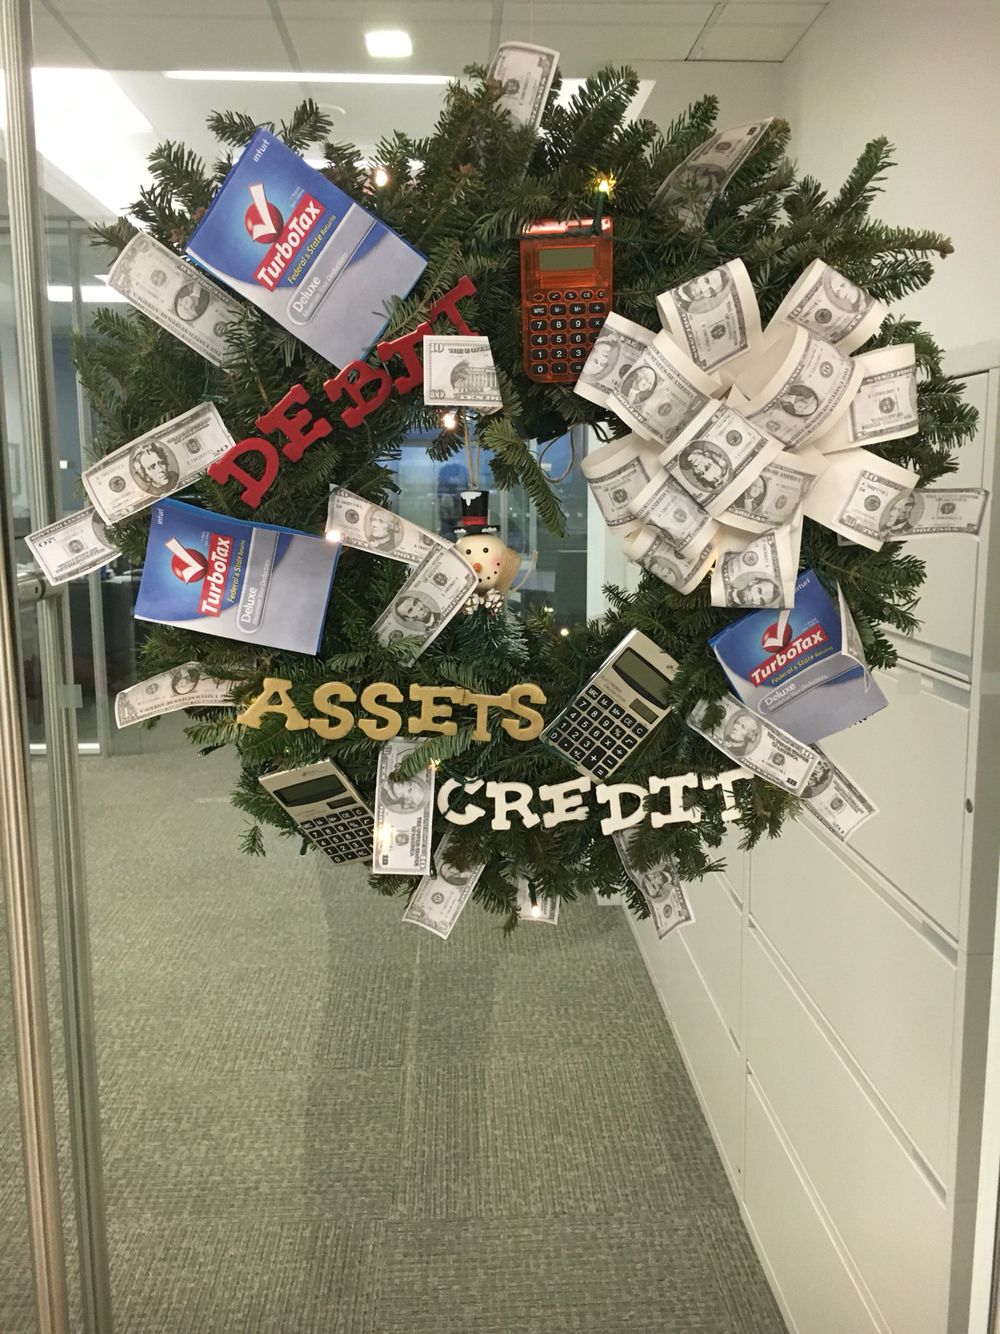 Accounting Themed Wreath For Work Christmas Tree Themes Christmas Wreaths Work Wreath